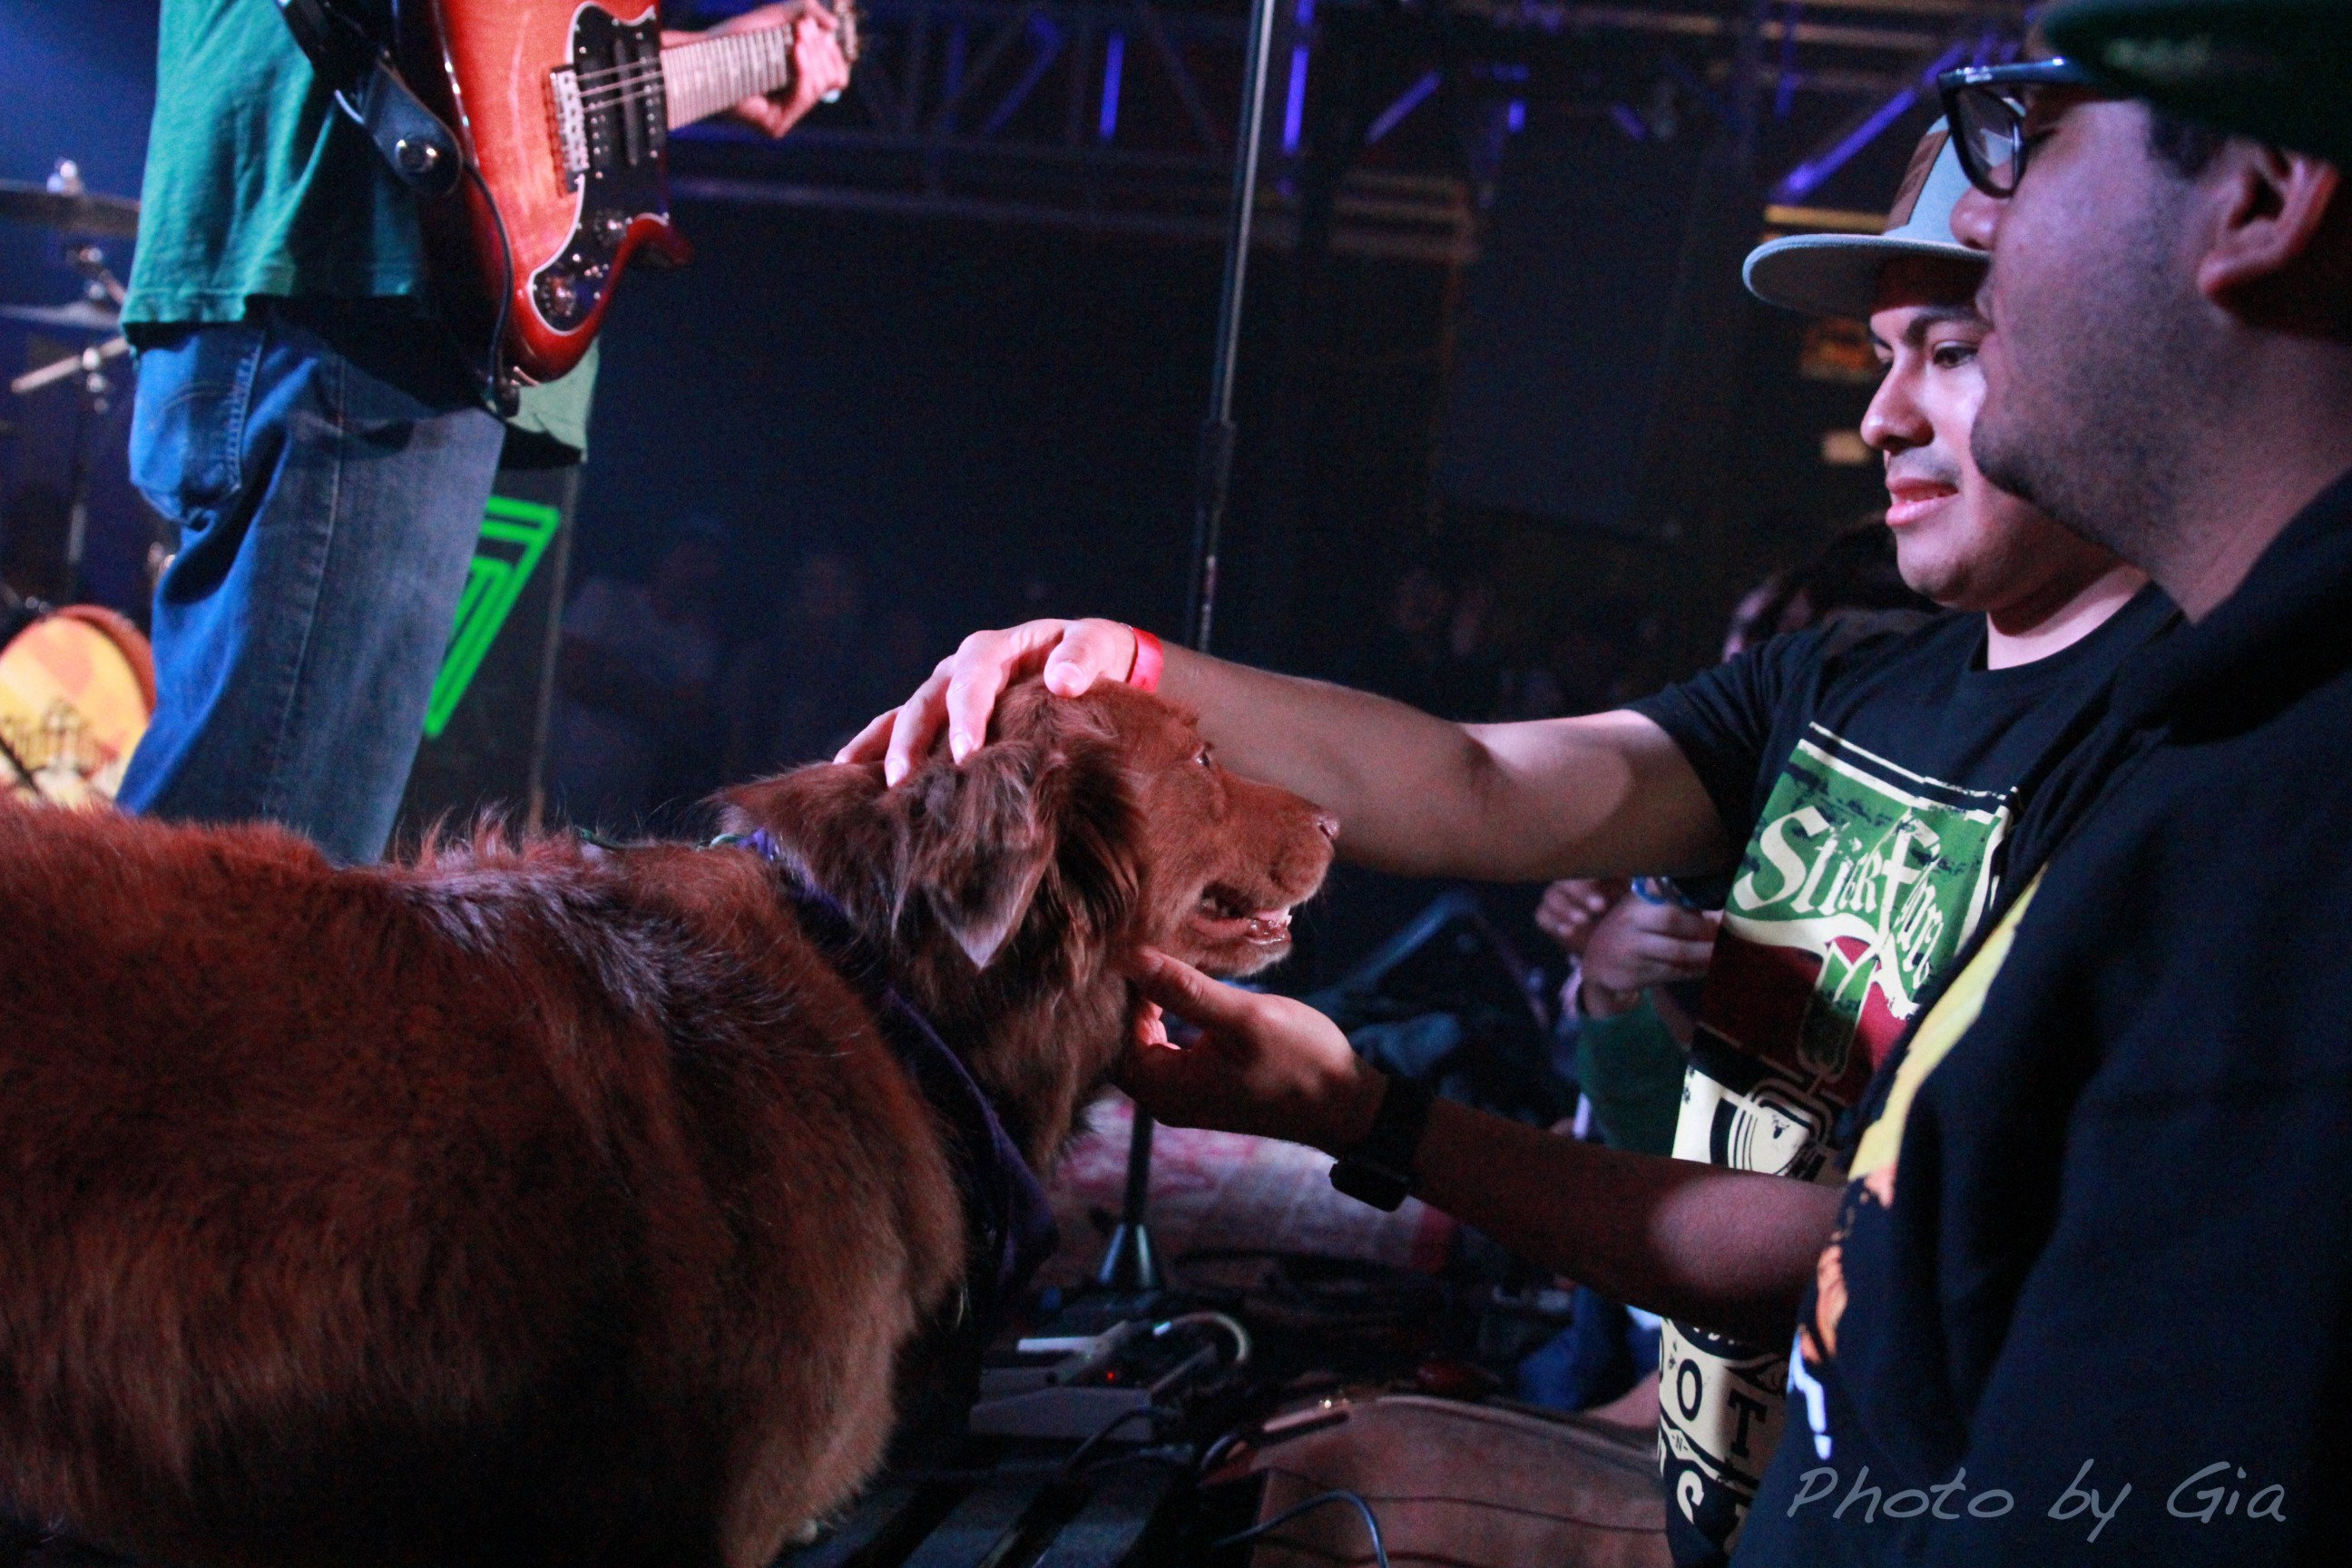 Cocoa The Tour Dog Giving The Audience Some Love.